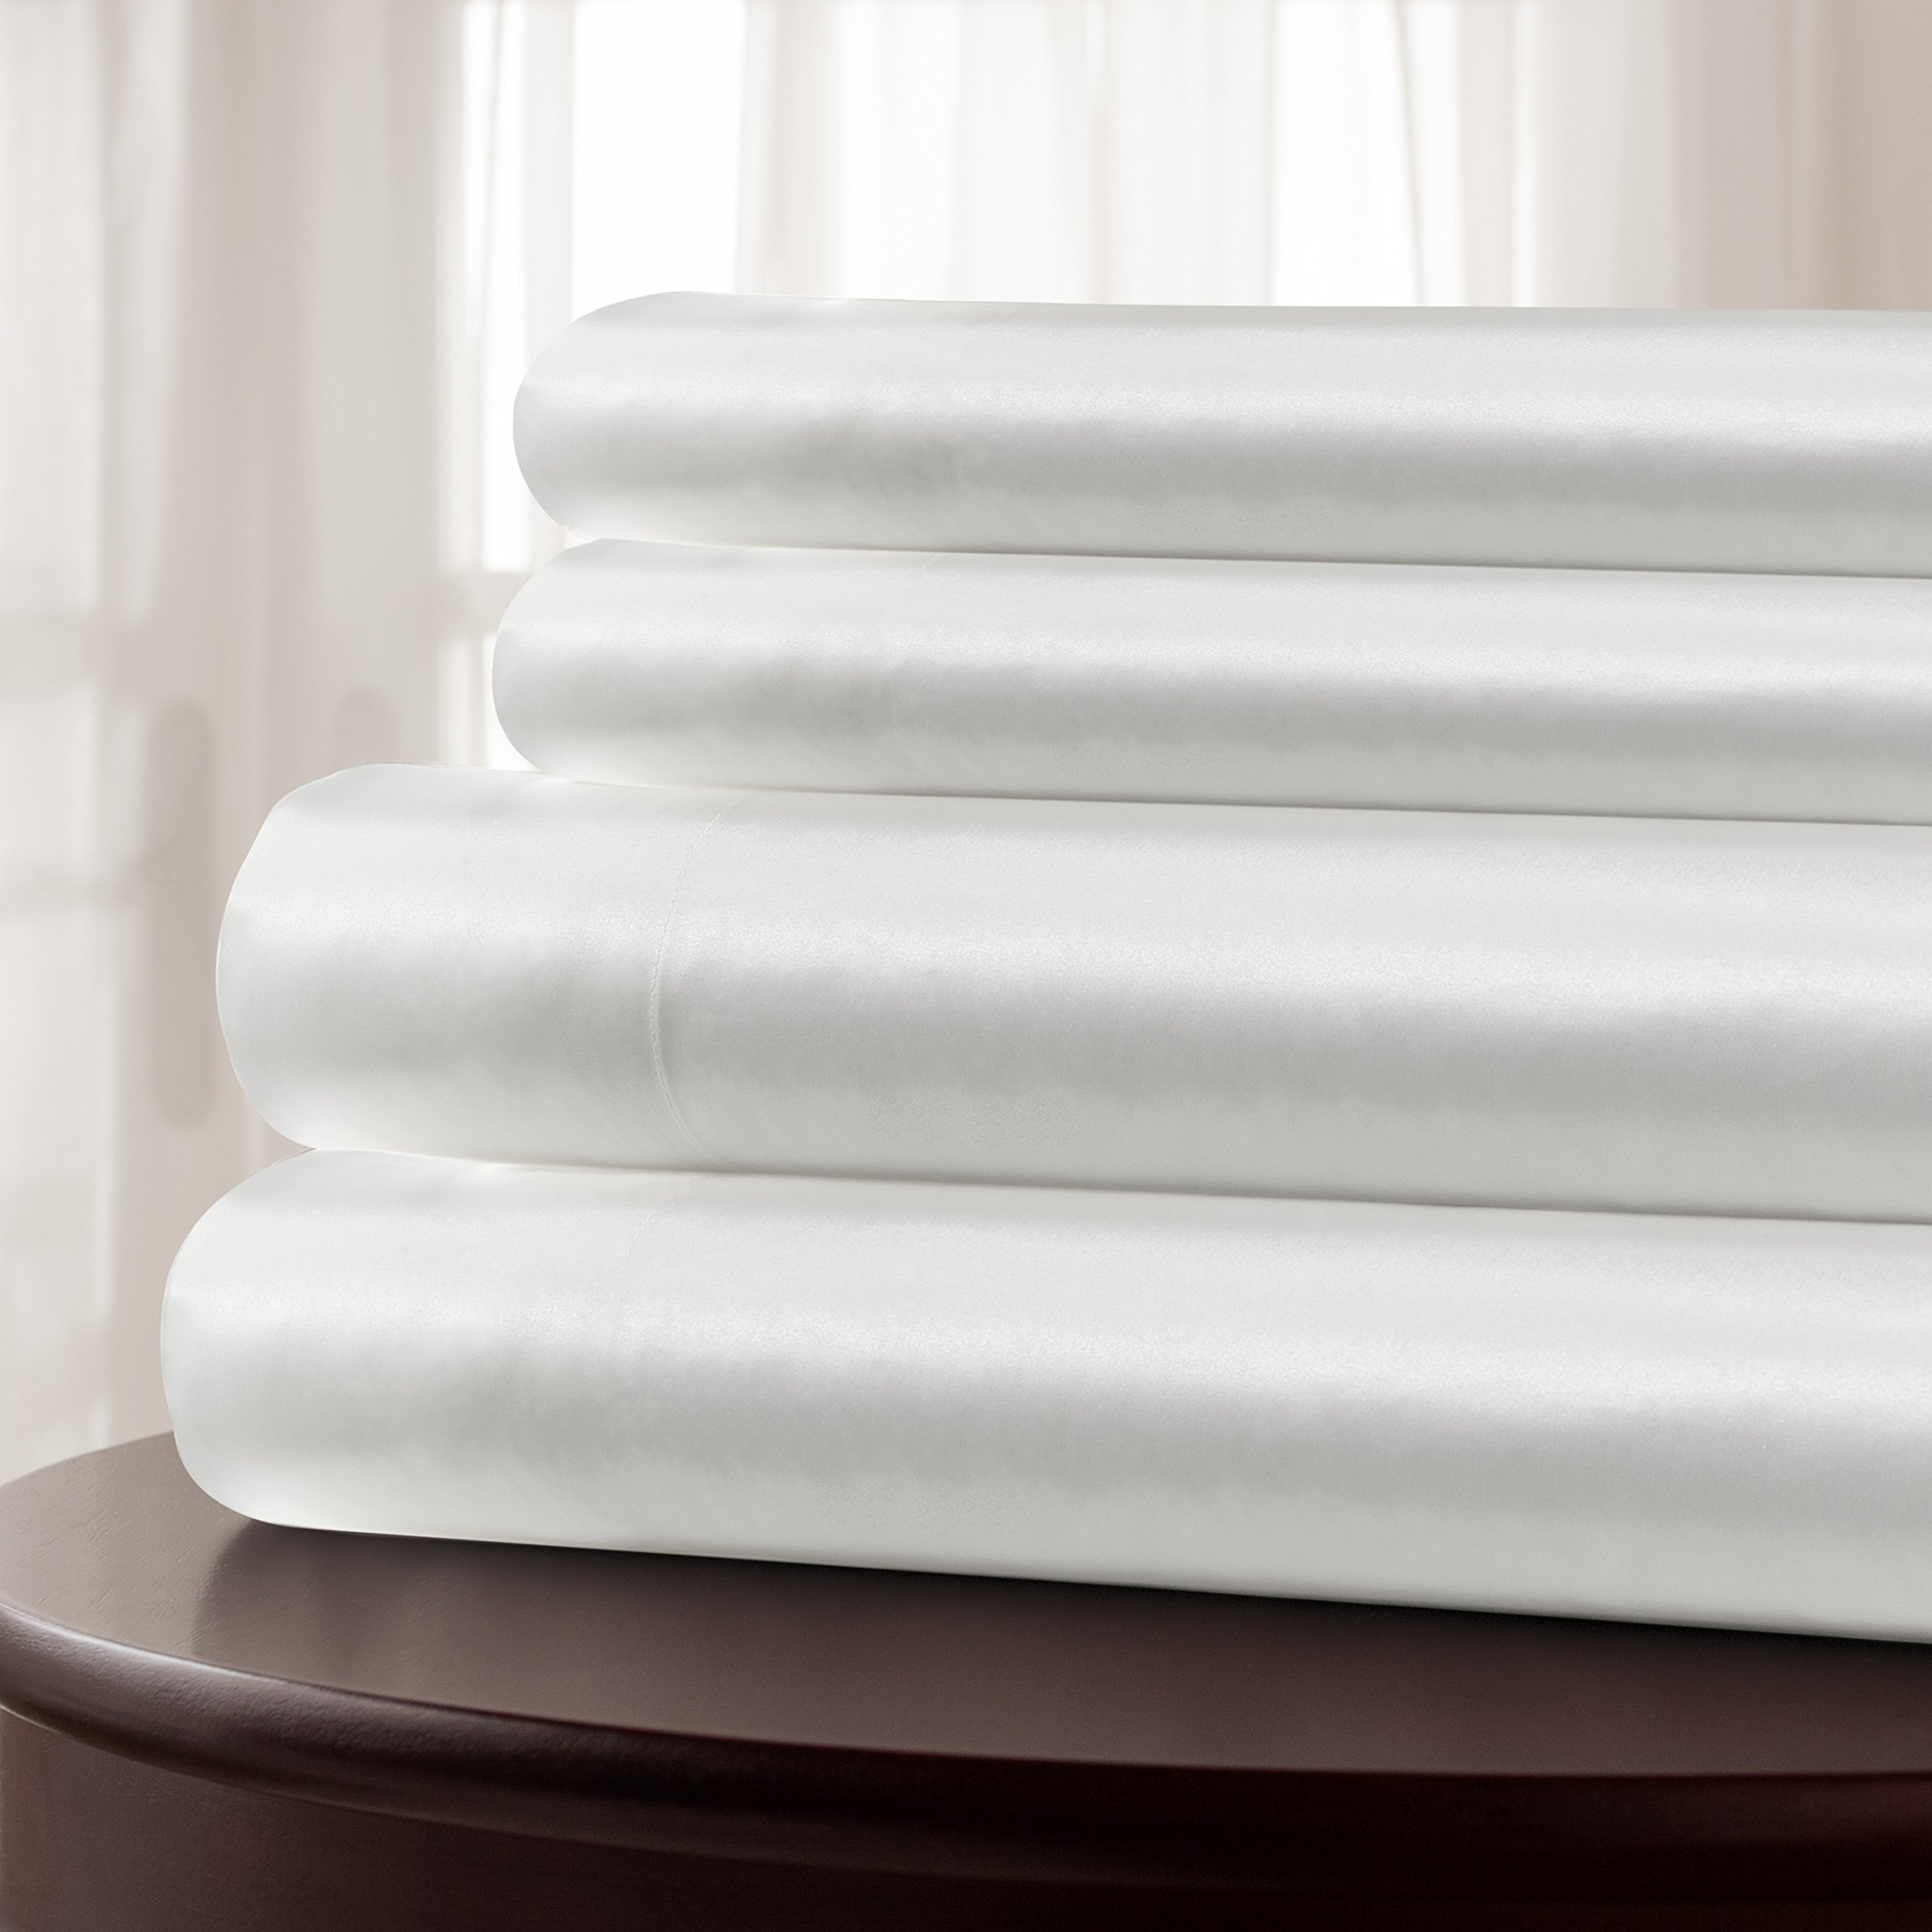 Twin Silk Sheet Set (15'' Pocket) - White - DELUXE 22 Momme 100% Pure Mulberry Charmeuse Natural Bedding - OEKO-TEX Certified - Seamless by Mulberry Park Silks (Image #2)